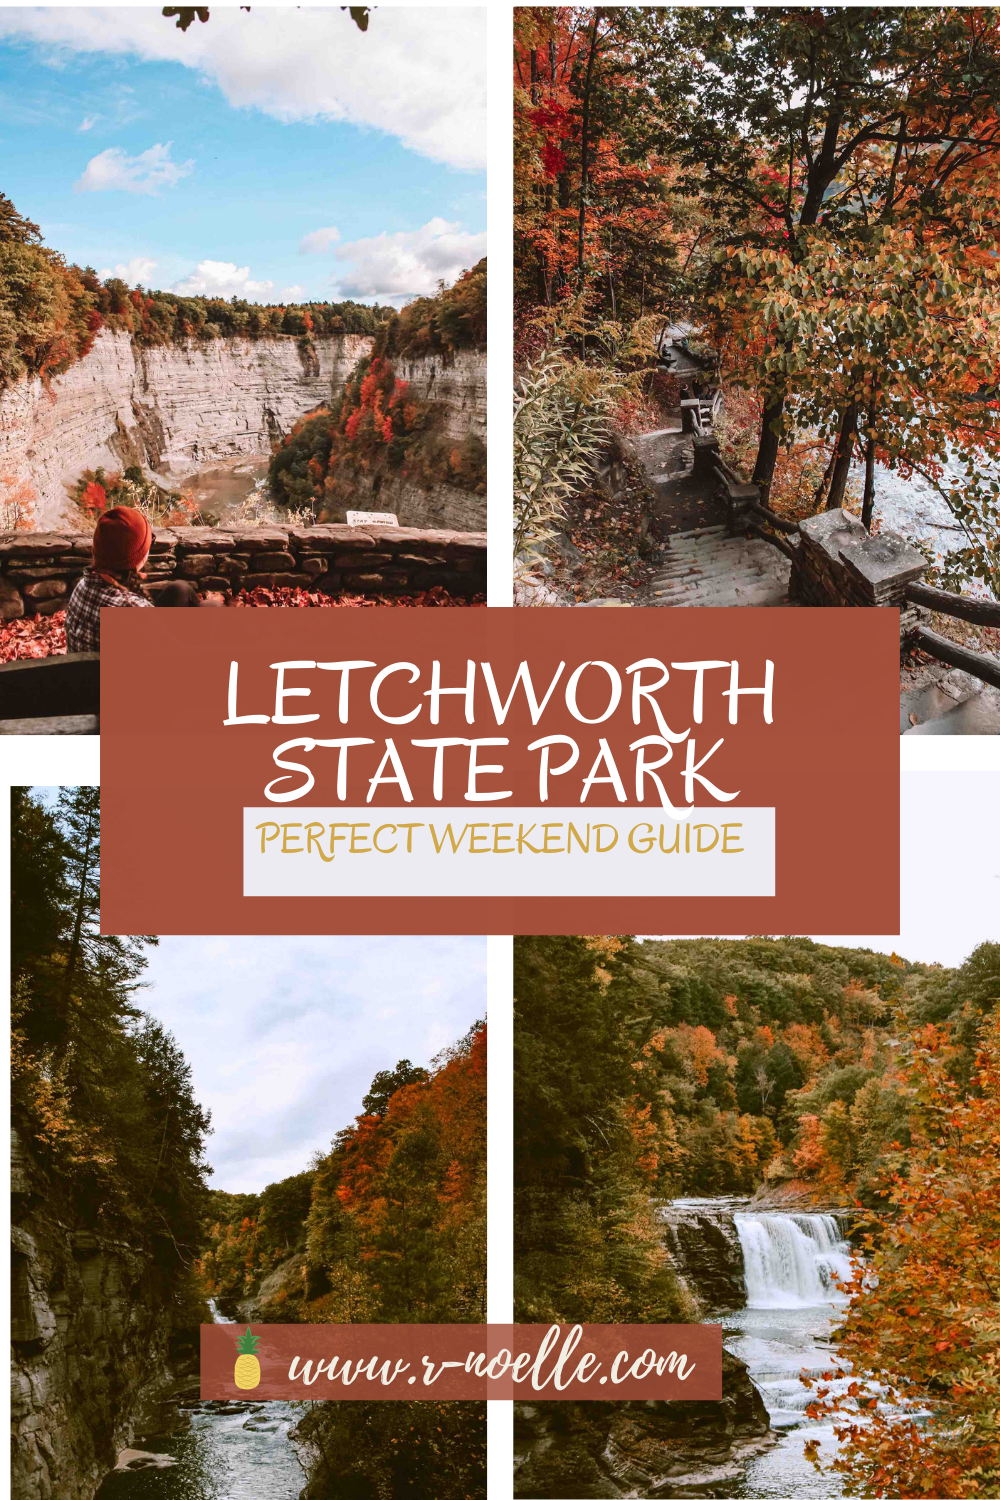 Letchworth State Park is a state park in New York. It is an awe inspiring park! #campingatletchworth #letchworthstateparkcamping #letchworthstateparkfall #grandcanyoneoftheeast | Camping At Letwchworth | Hiking the Gorge Trail in Letchworth | Gorges of New York